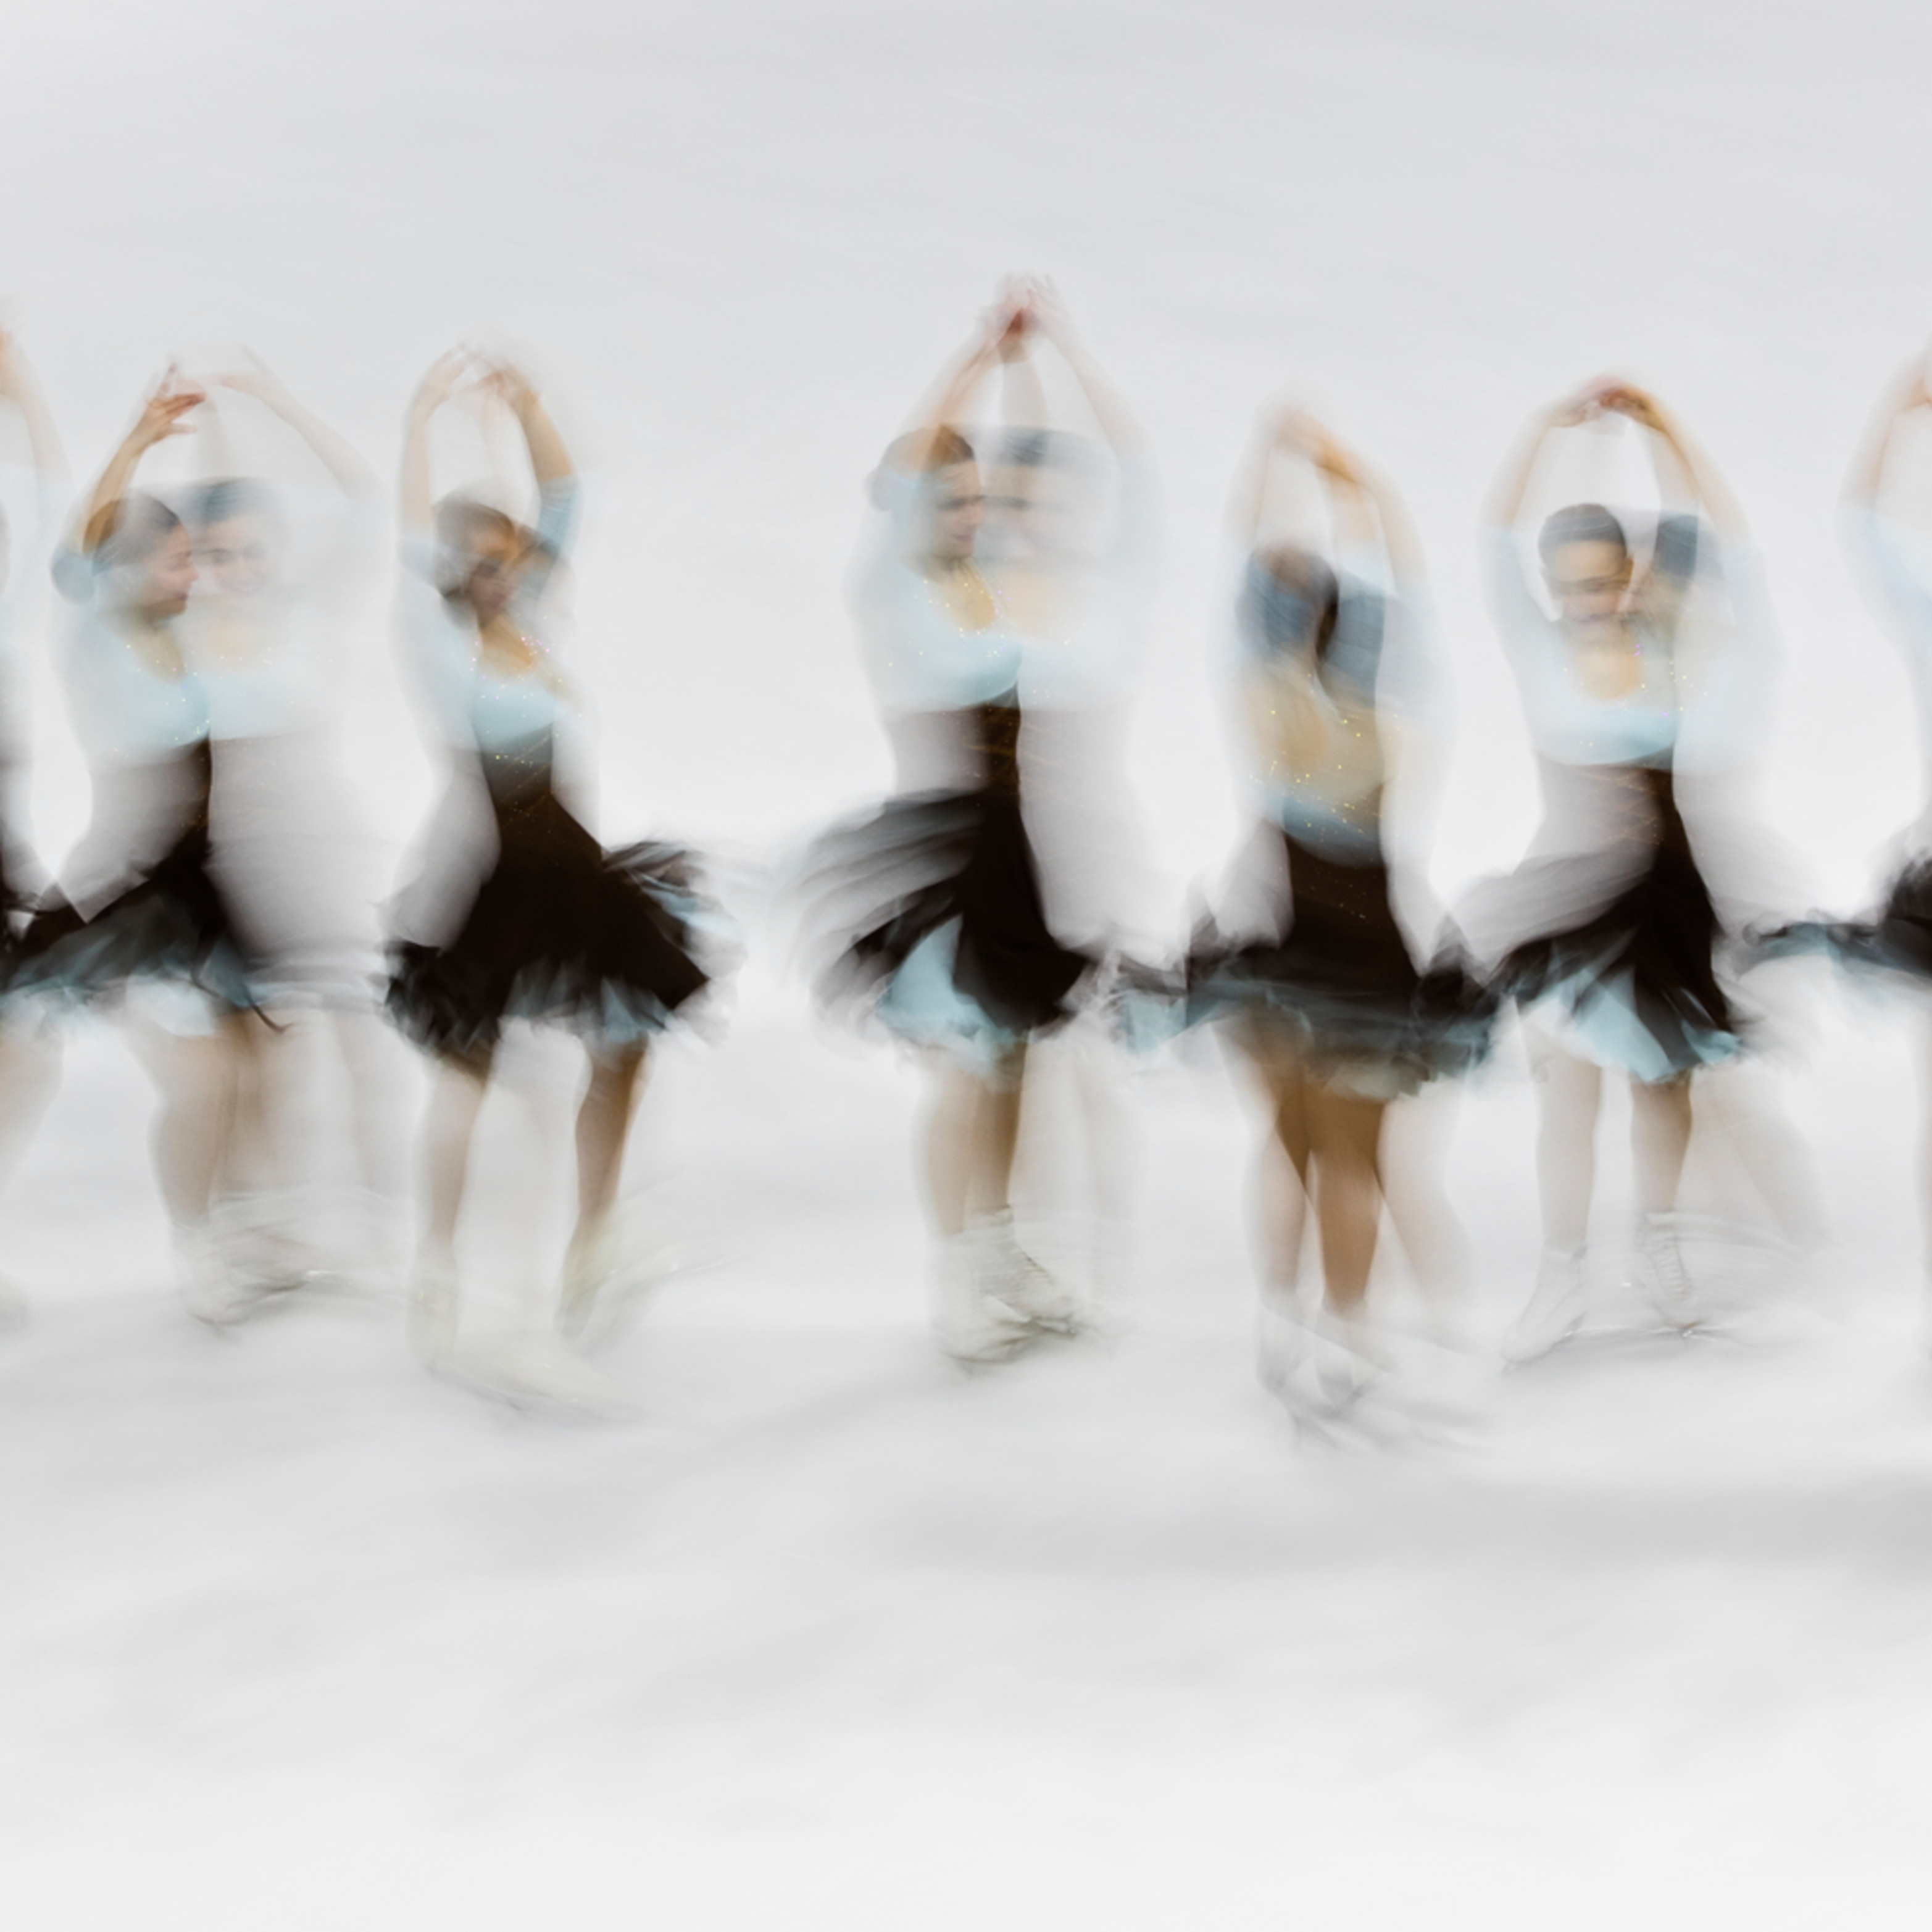 Abstract synchro skating nationals 2020 200227 5741 dw2whb